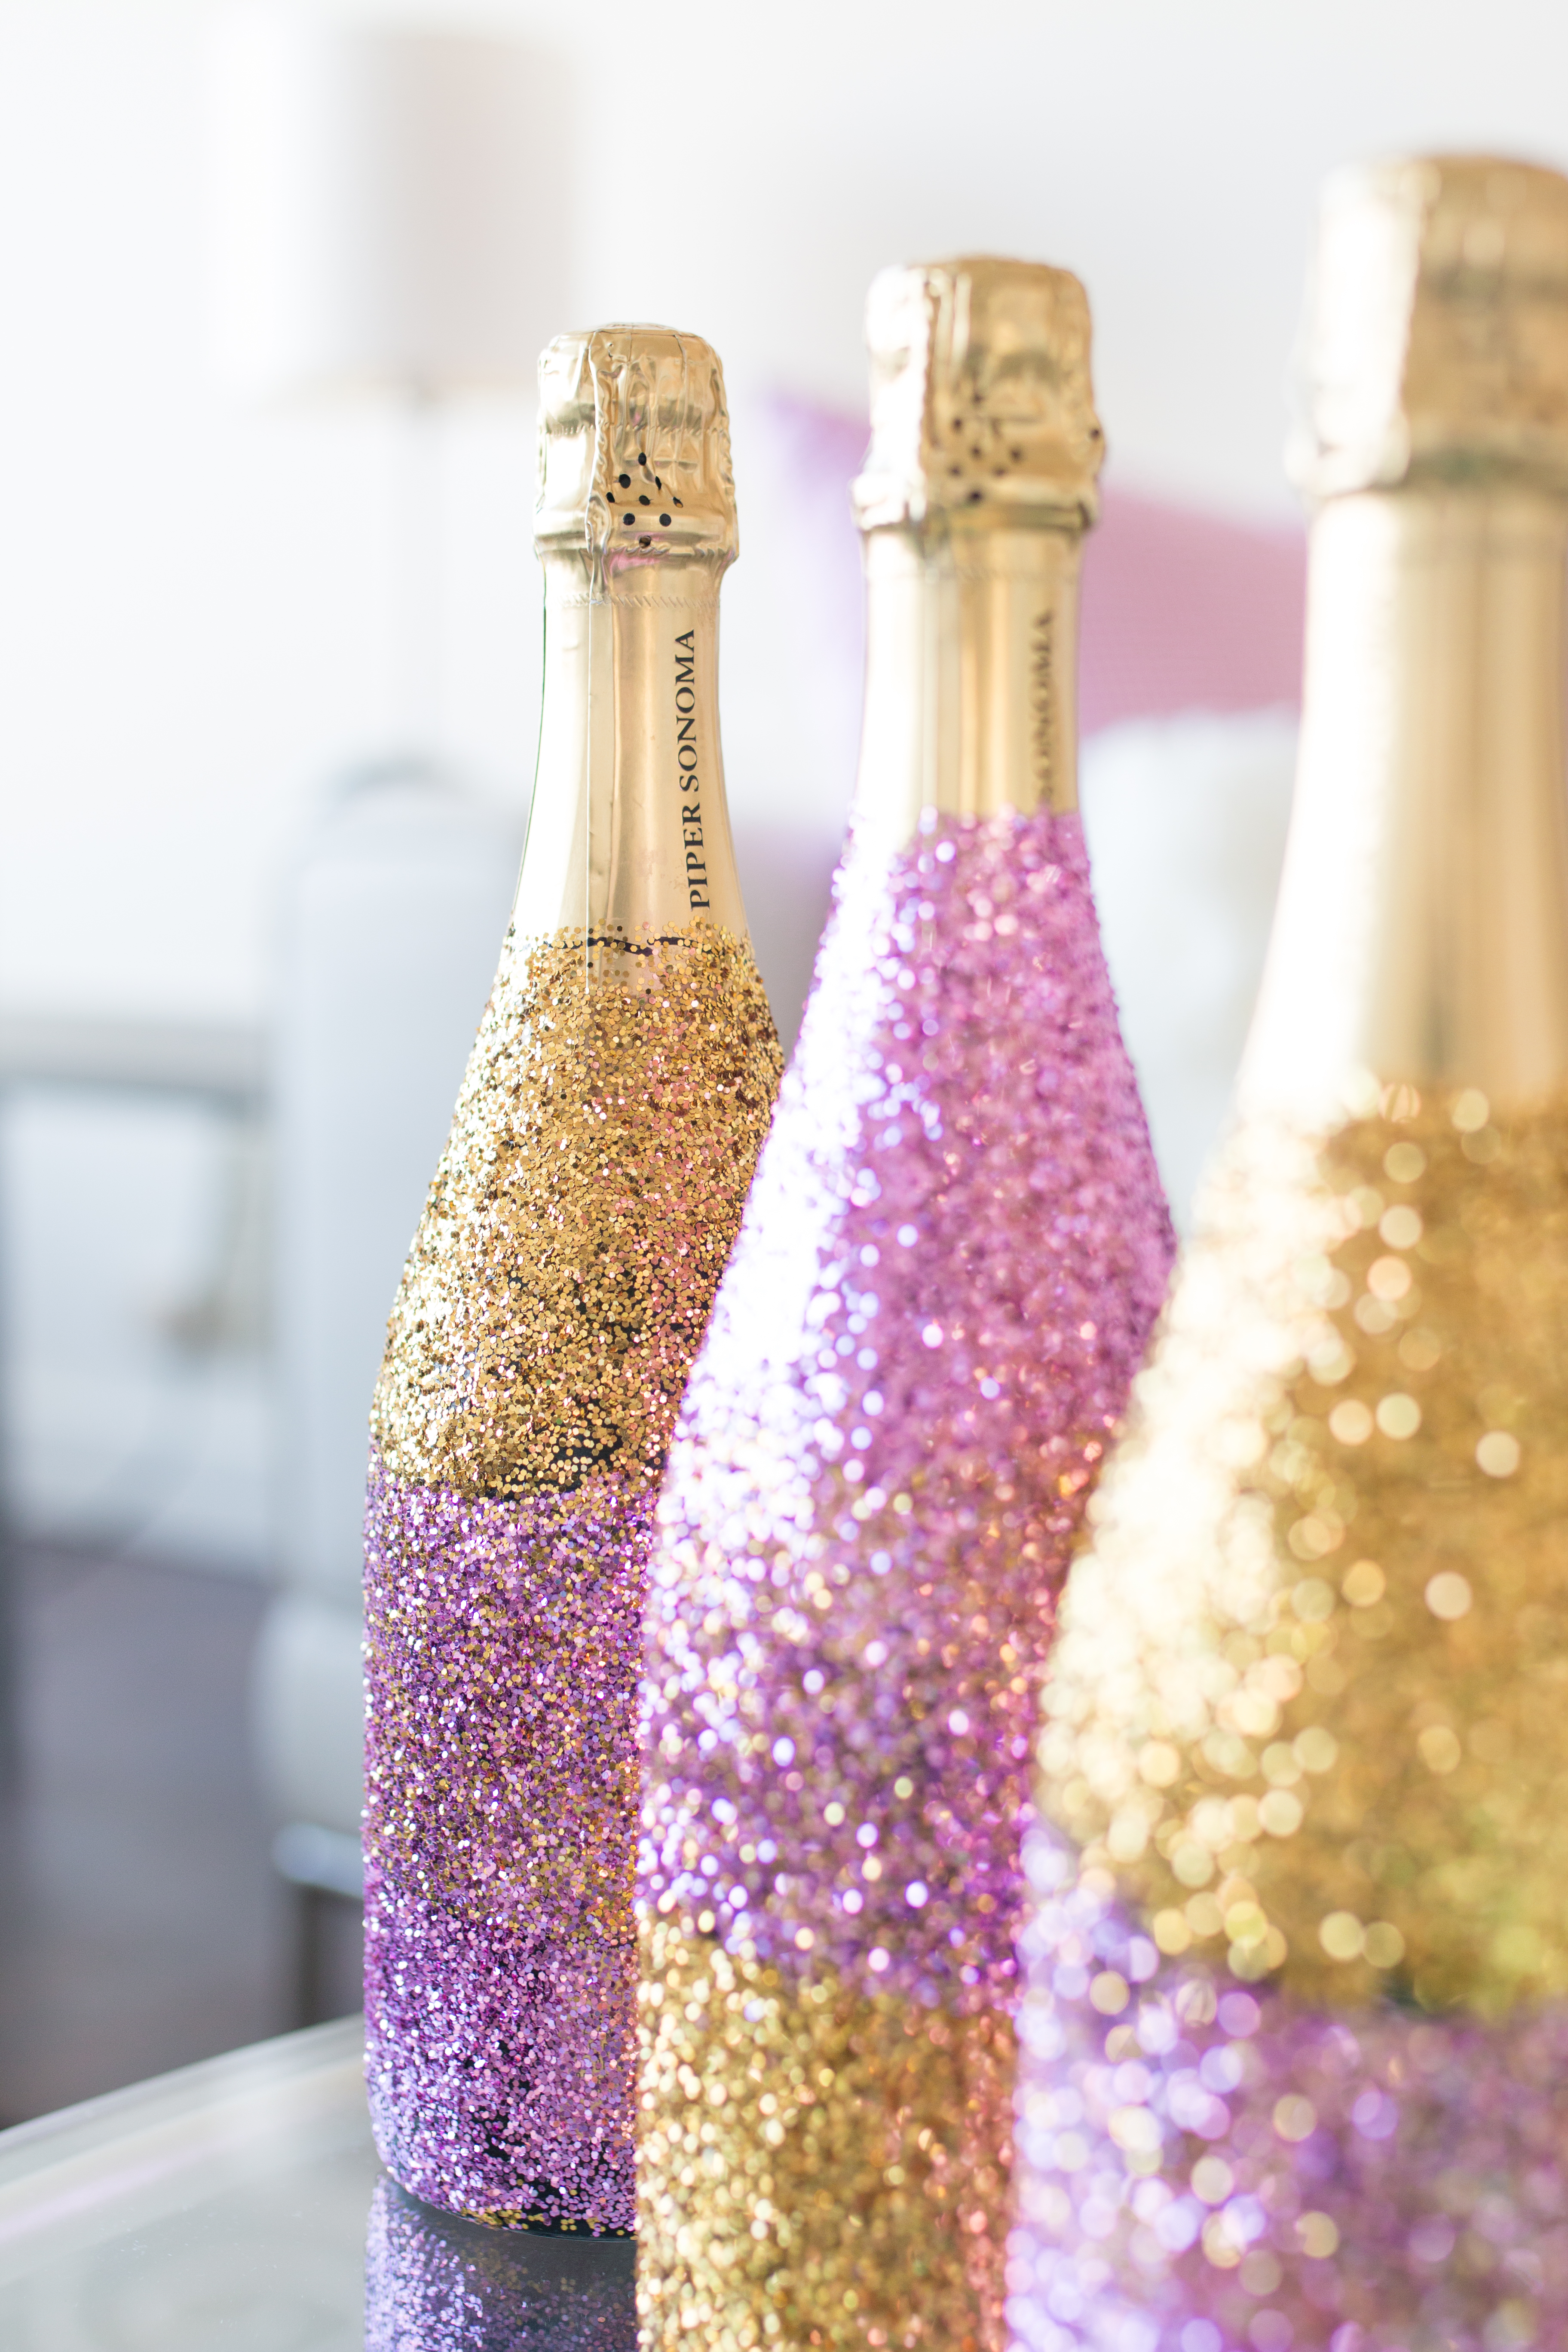 Diy glitter ombr champagne bottle baubles to bubbles for How to make glitter wine bottles